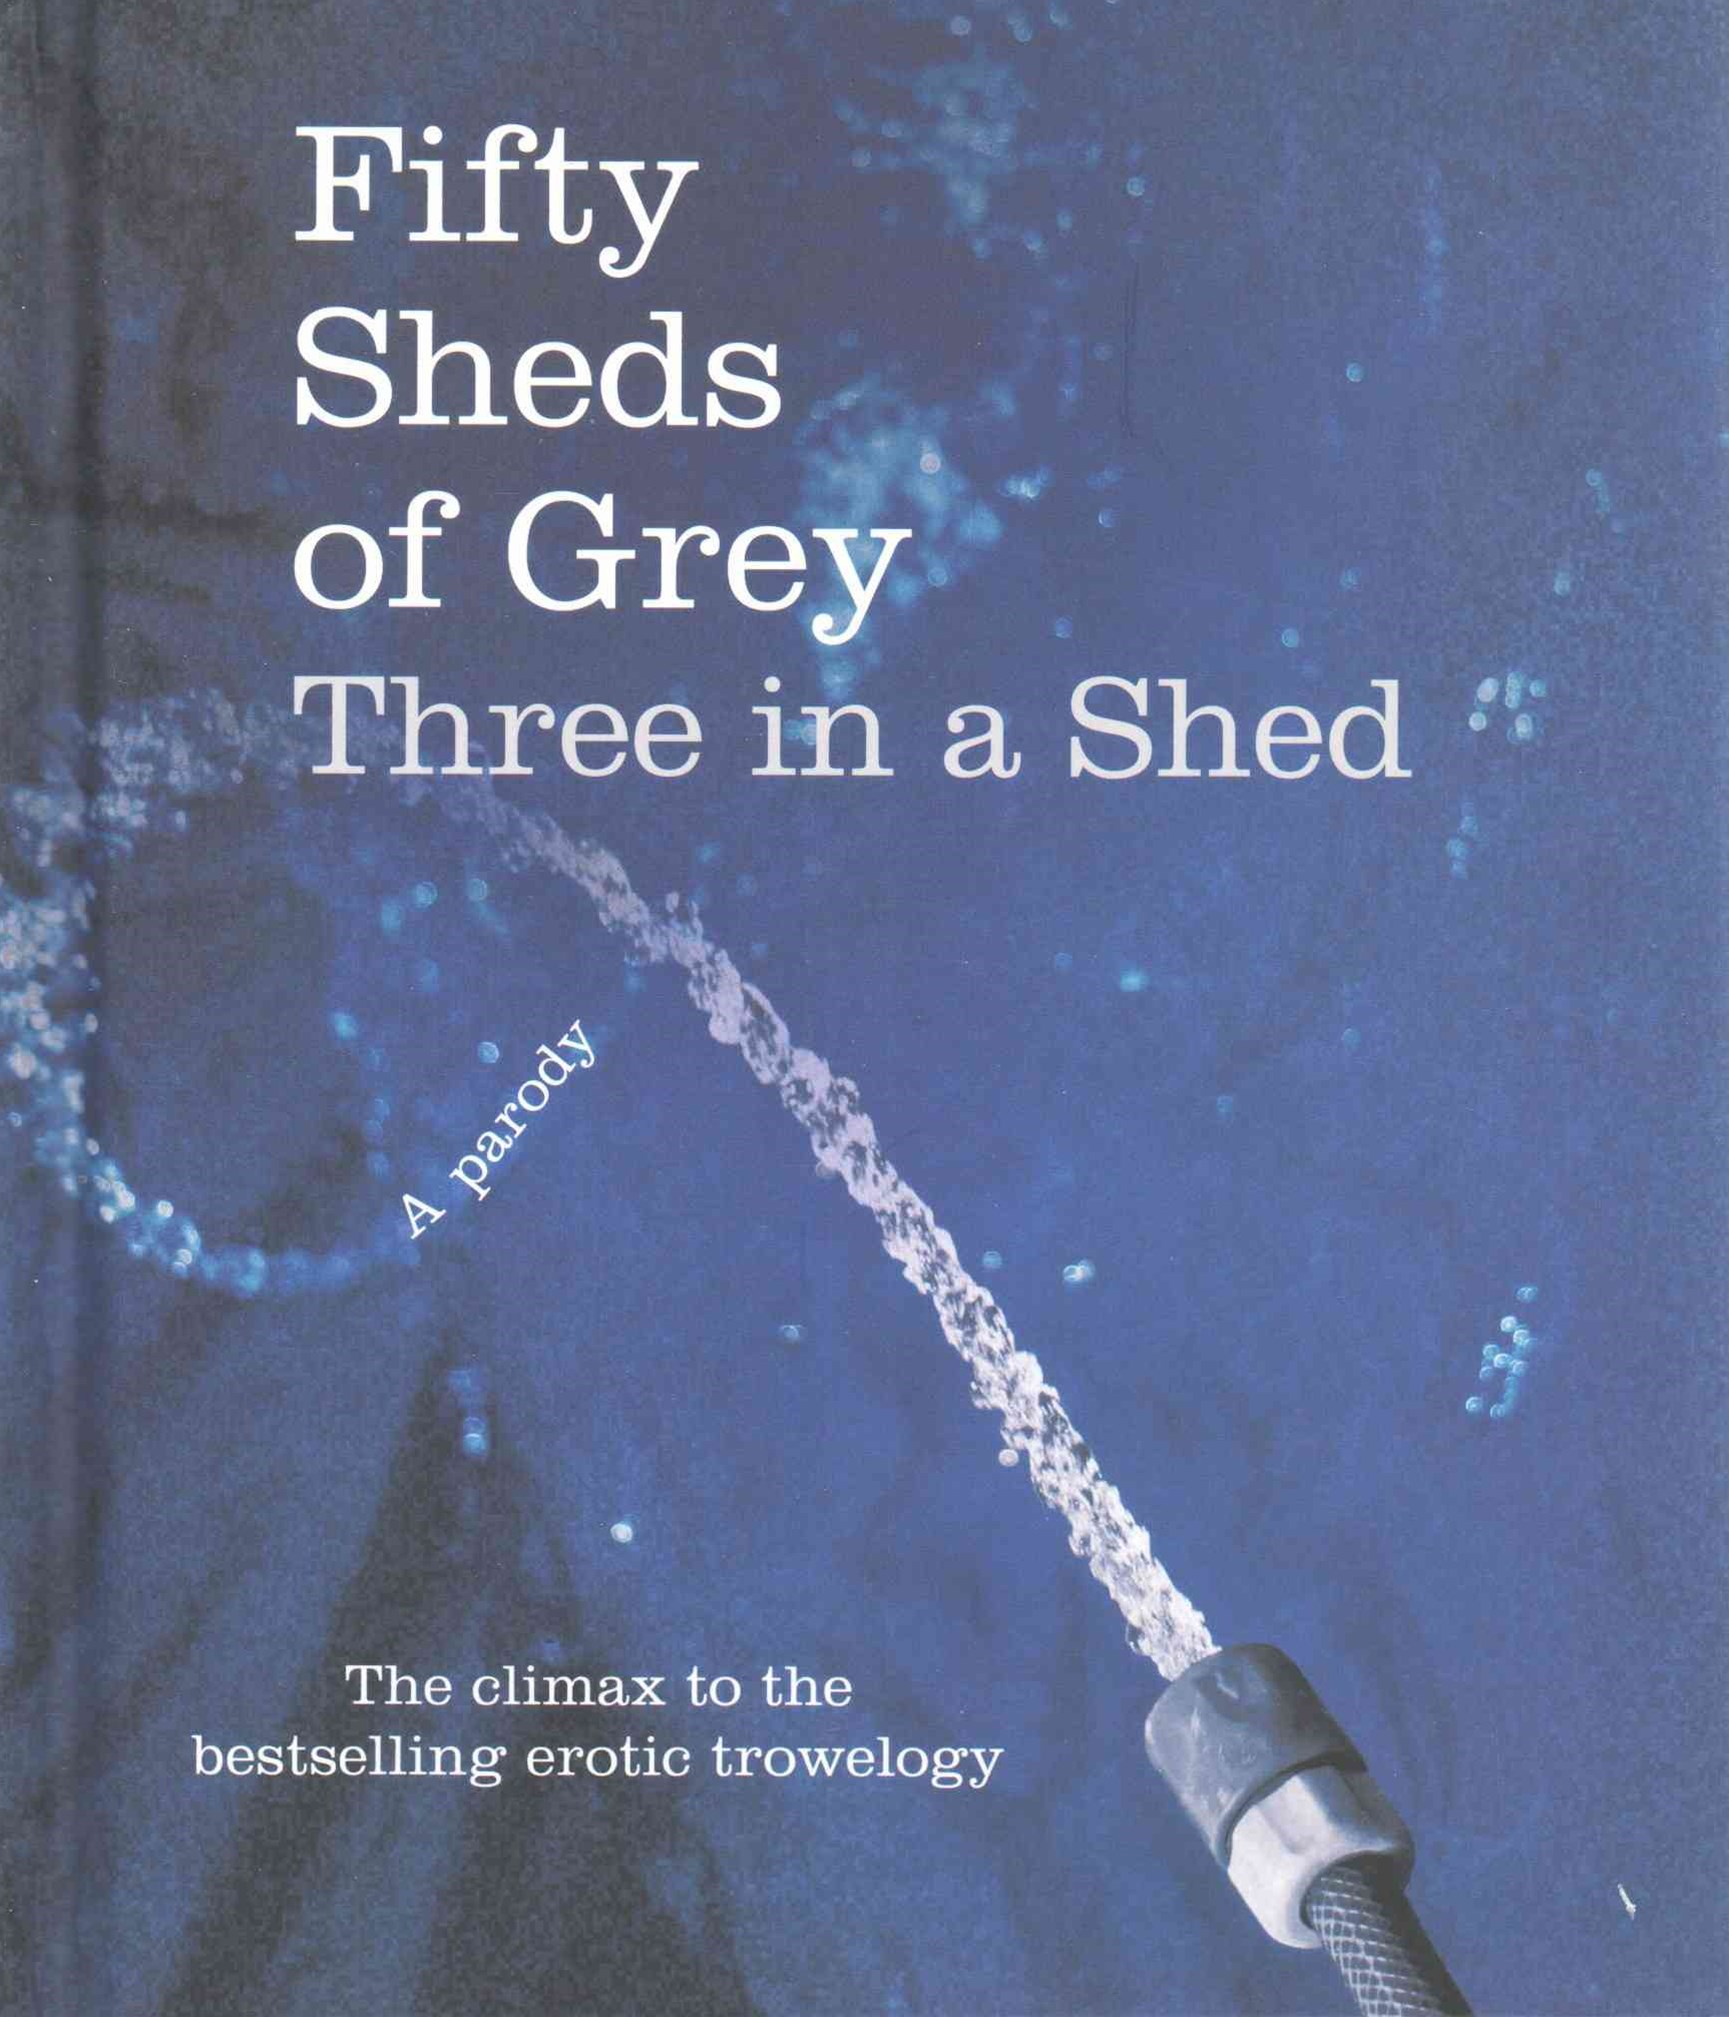 Fifty Sheds of Grey: Three in a Shed (A Parody)